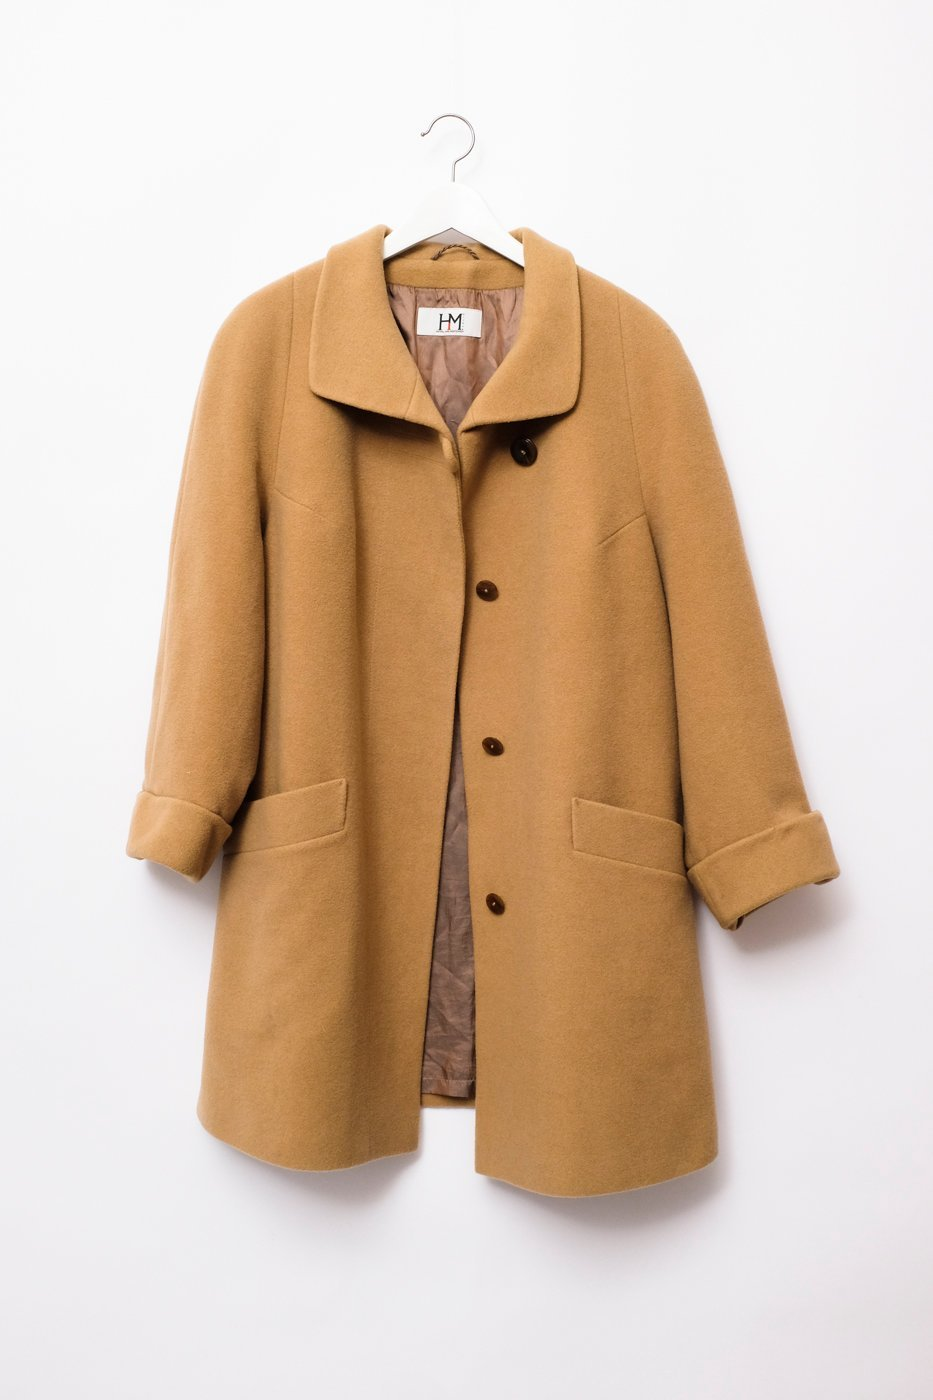 0275_WOOL CAMEL JACKET